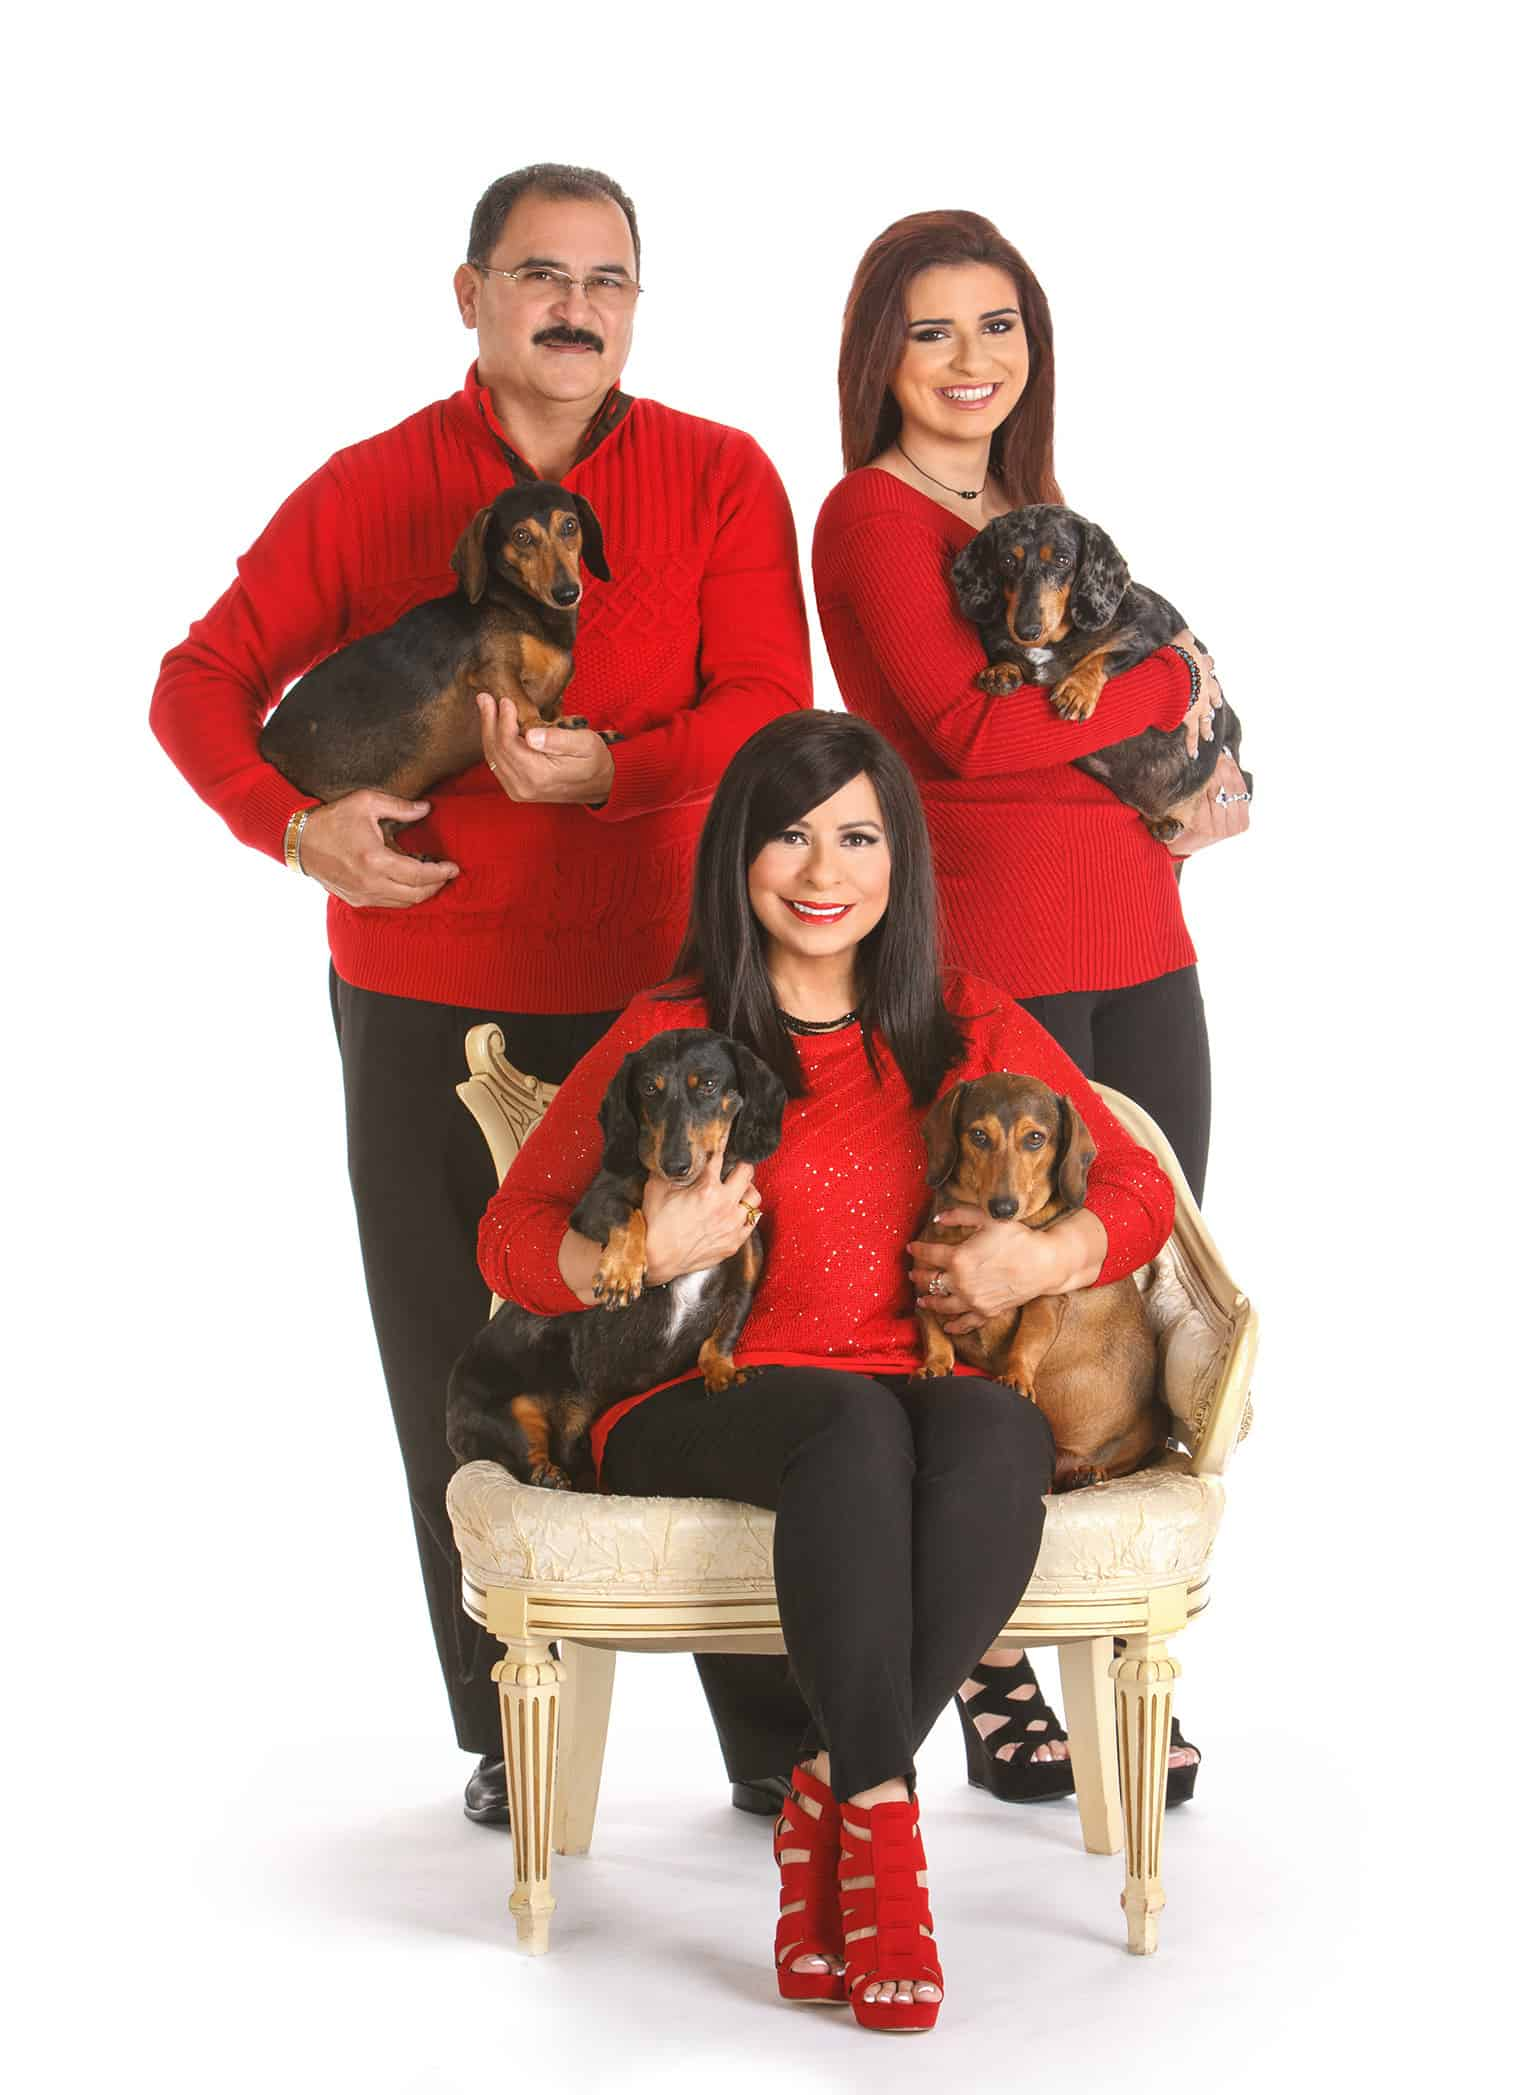 Christmas-sweater-family-photos-with-your-pets